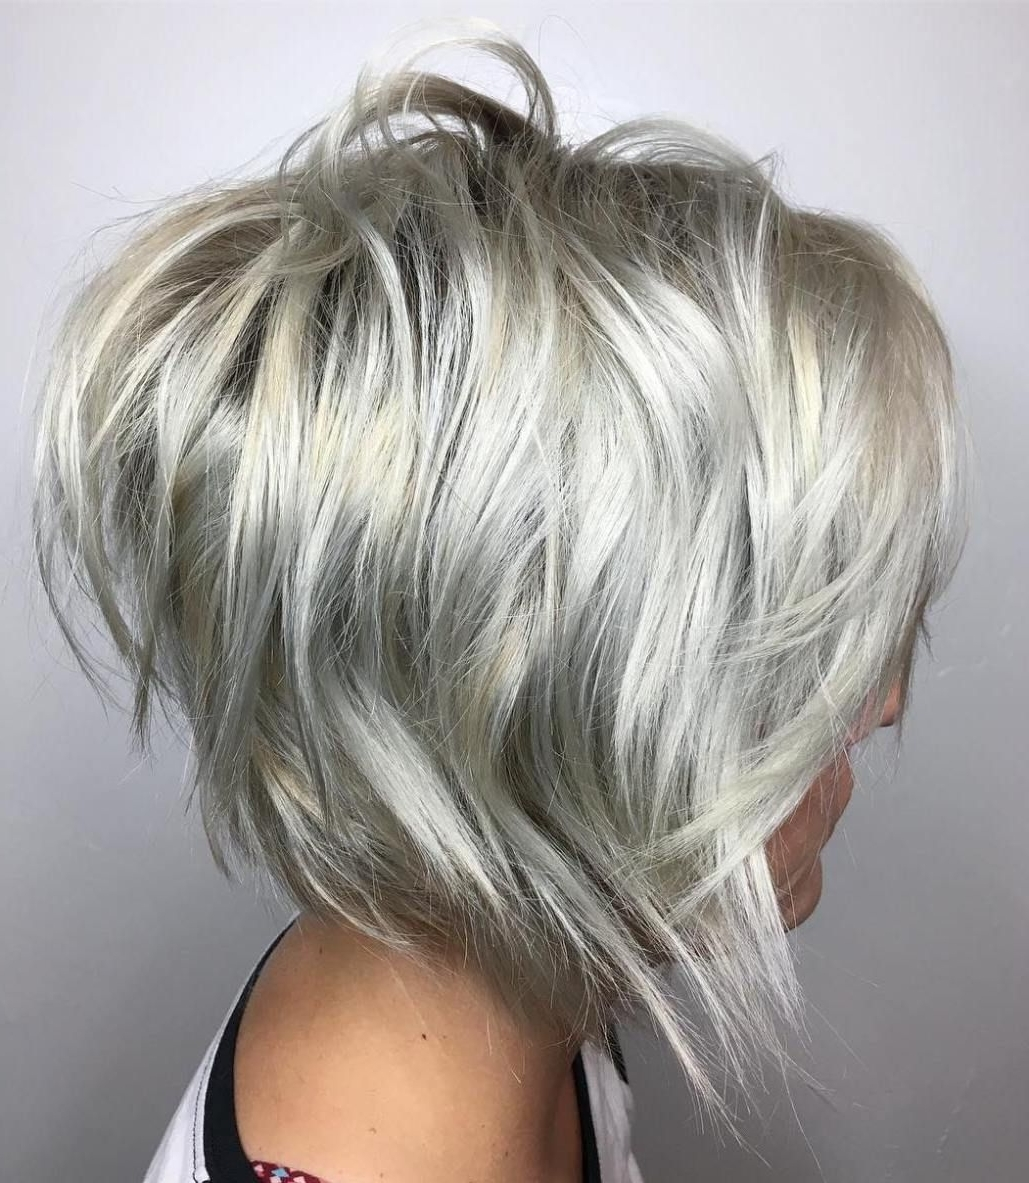 Well Liked Platinum Blonde Bob Hairstyles With Exposed Roots Regarding 60 Overwhelming Ideas For Short Choppy Haircuts (View 18 of 20)